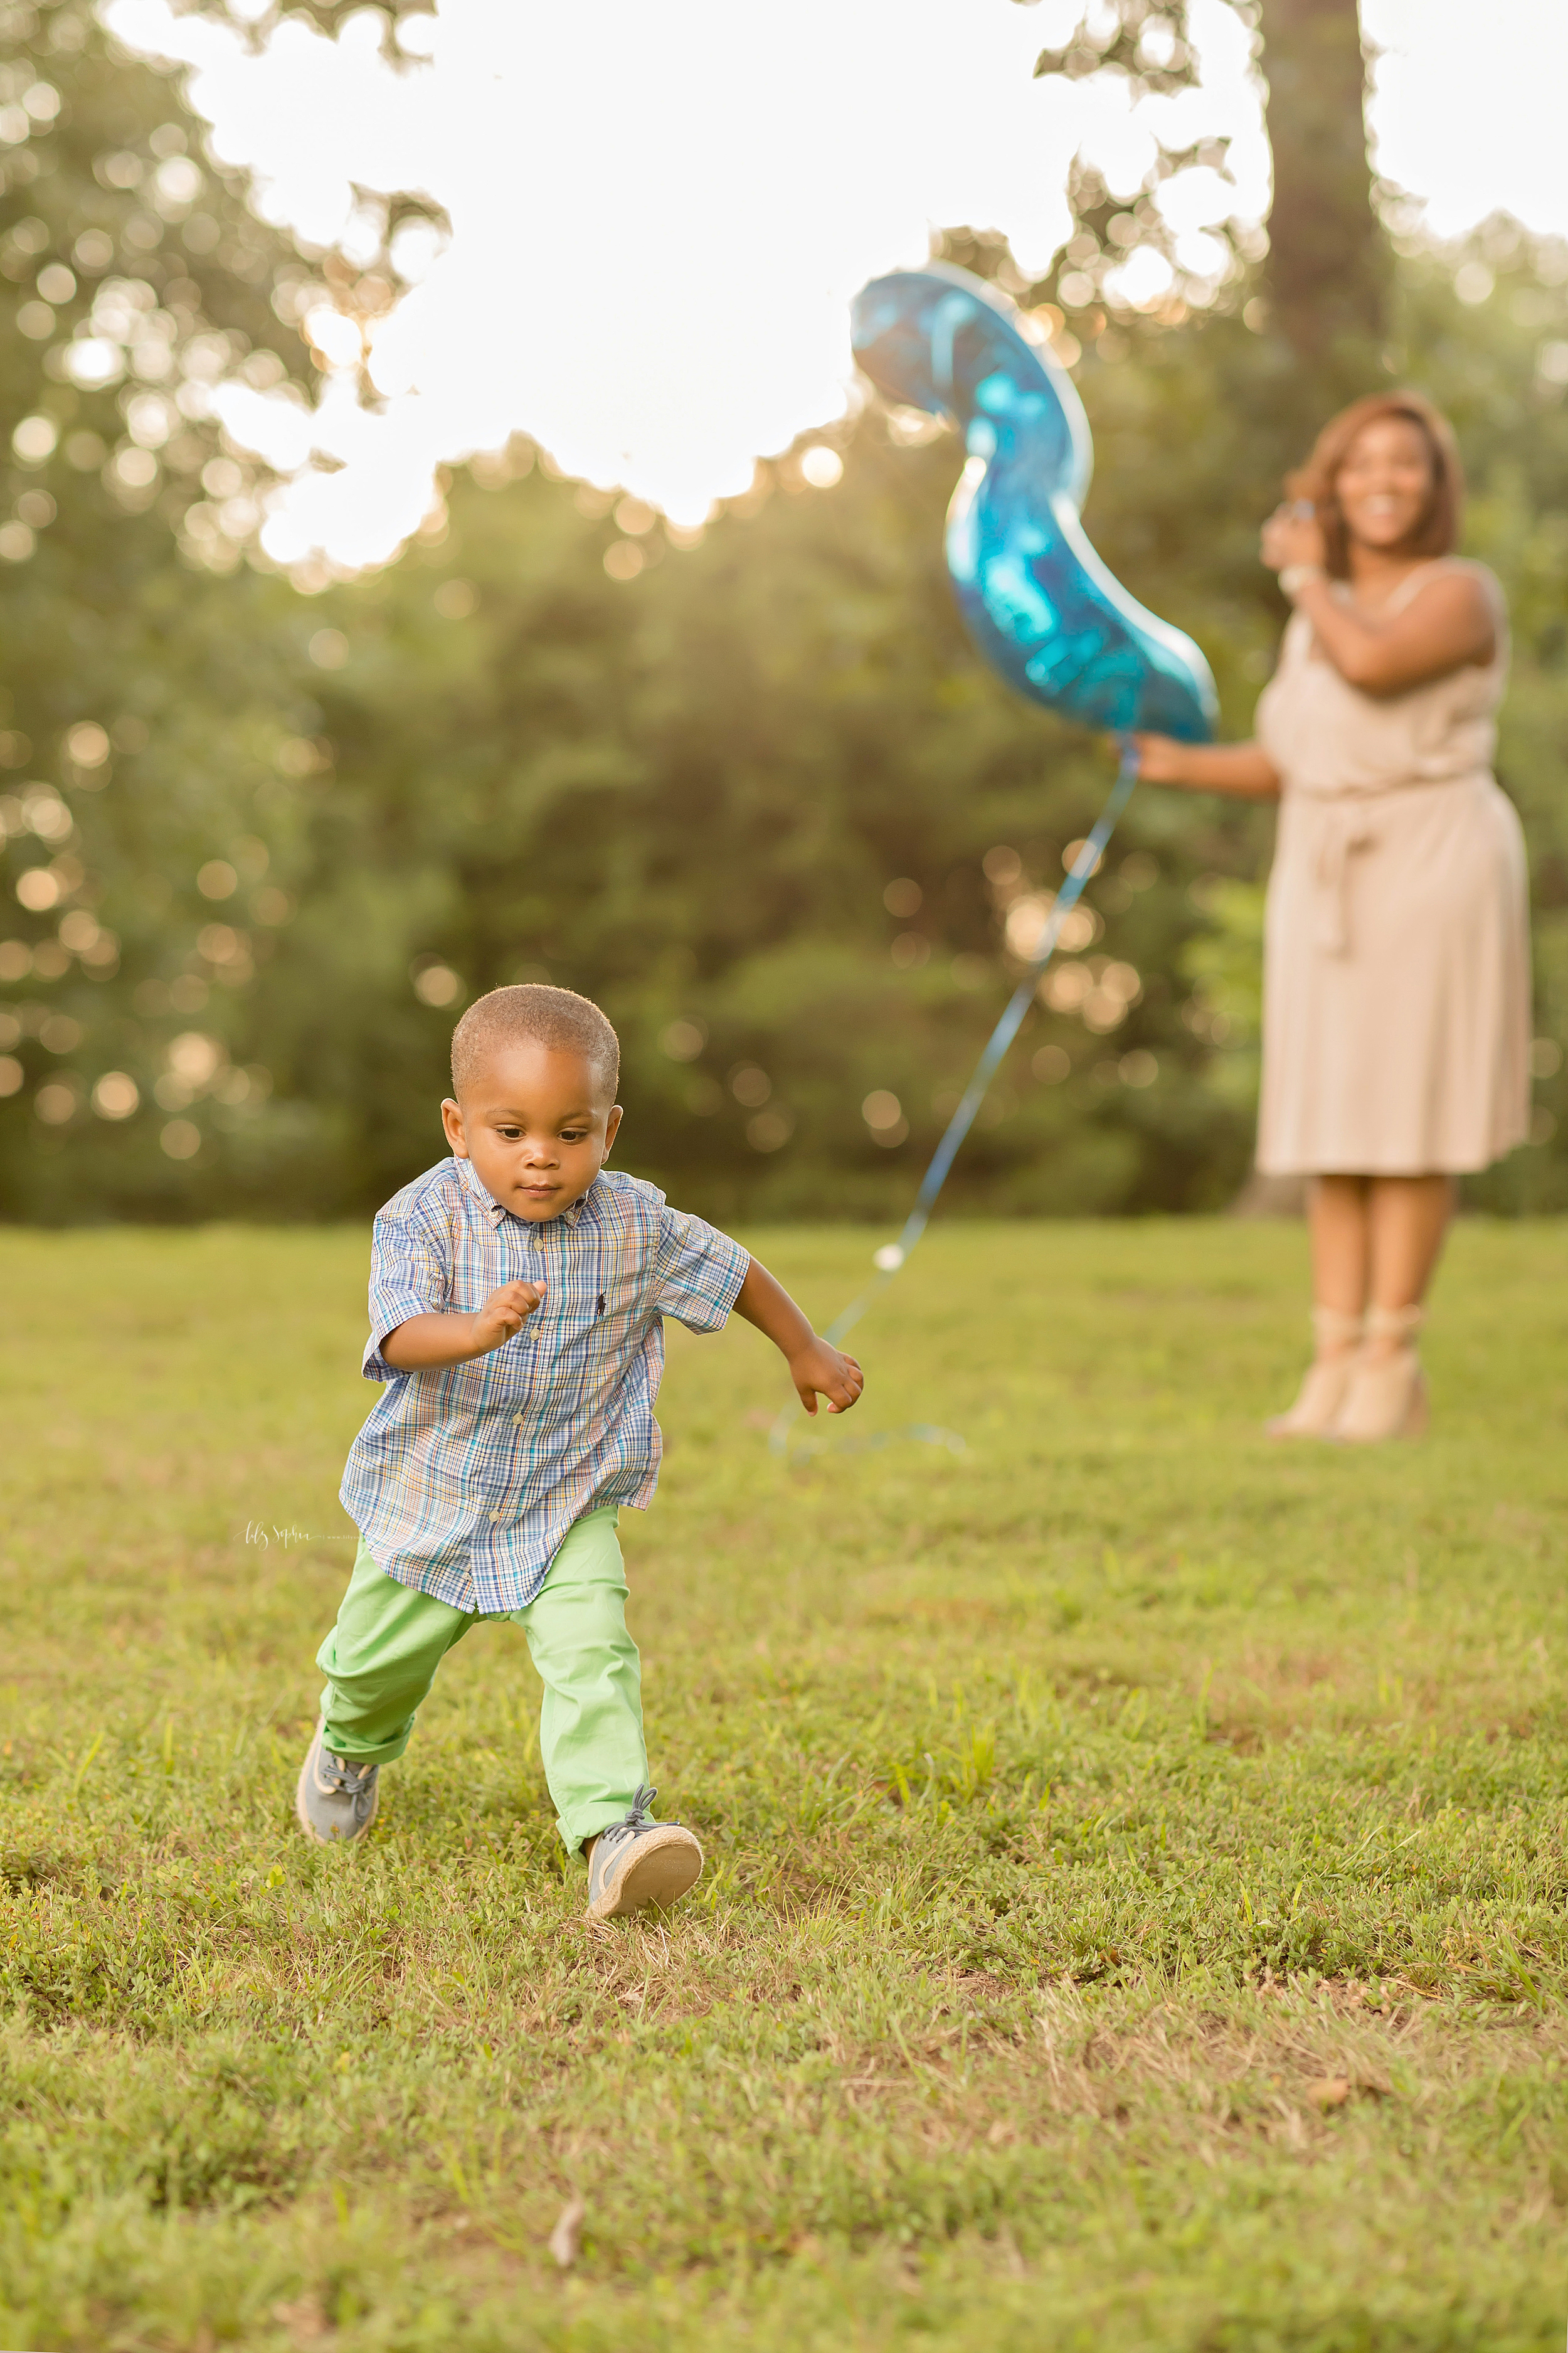 atlanta-hapeville-brookhaven-alpharetta-virginia-highlands-smyrna-decatur-lily-sophia-photography-outdoor-family-mother-toddler-son-second-birthday-park-sunset-pictures_0698.jpg